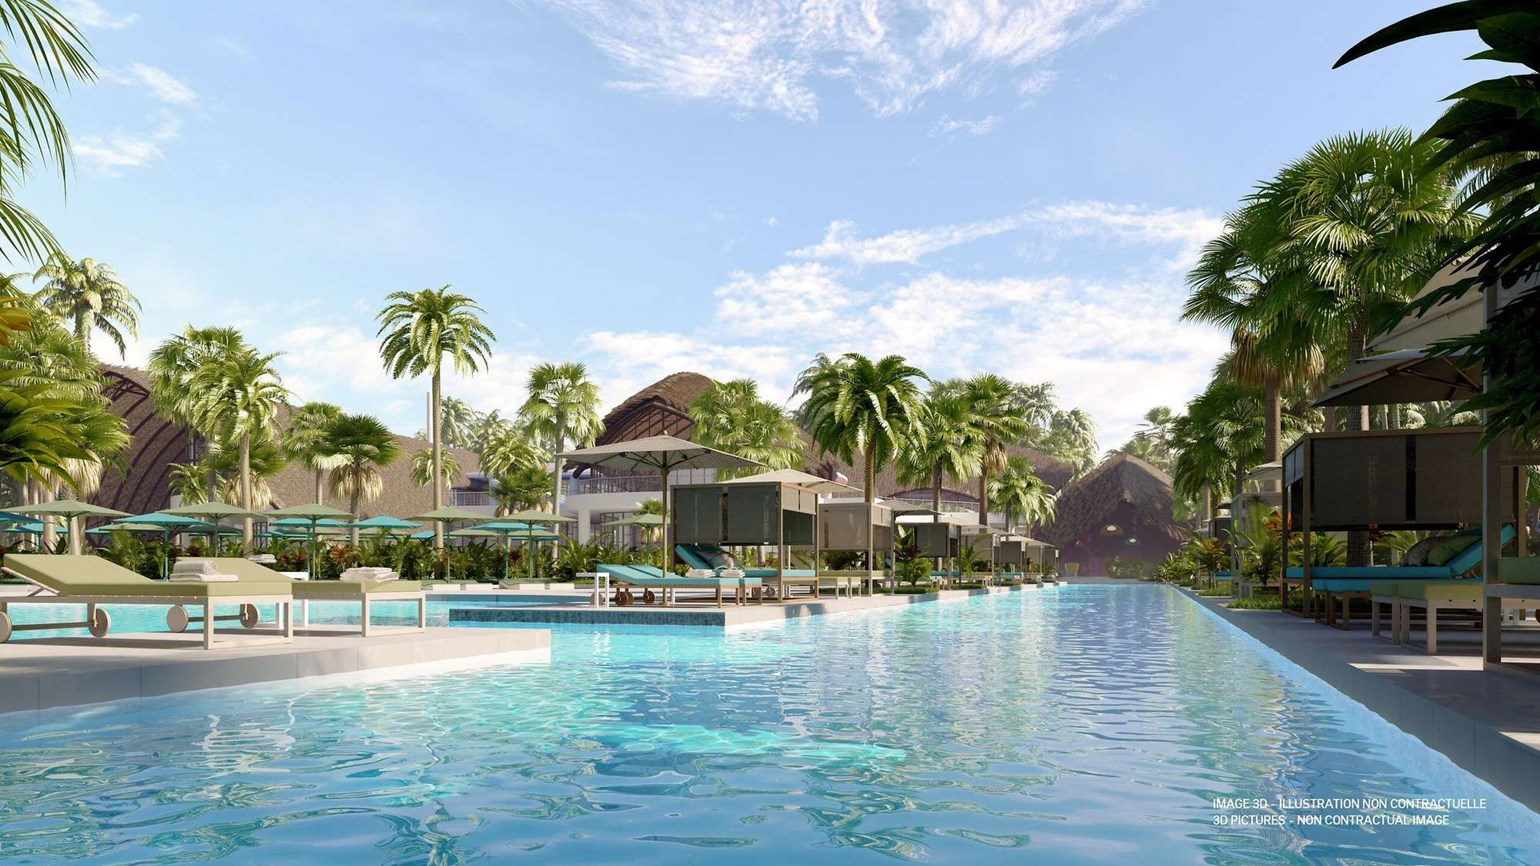 Club Med opens its resort in Miches, Dominican Republic